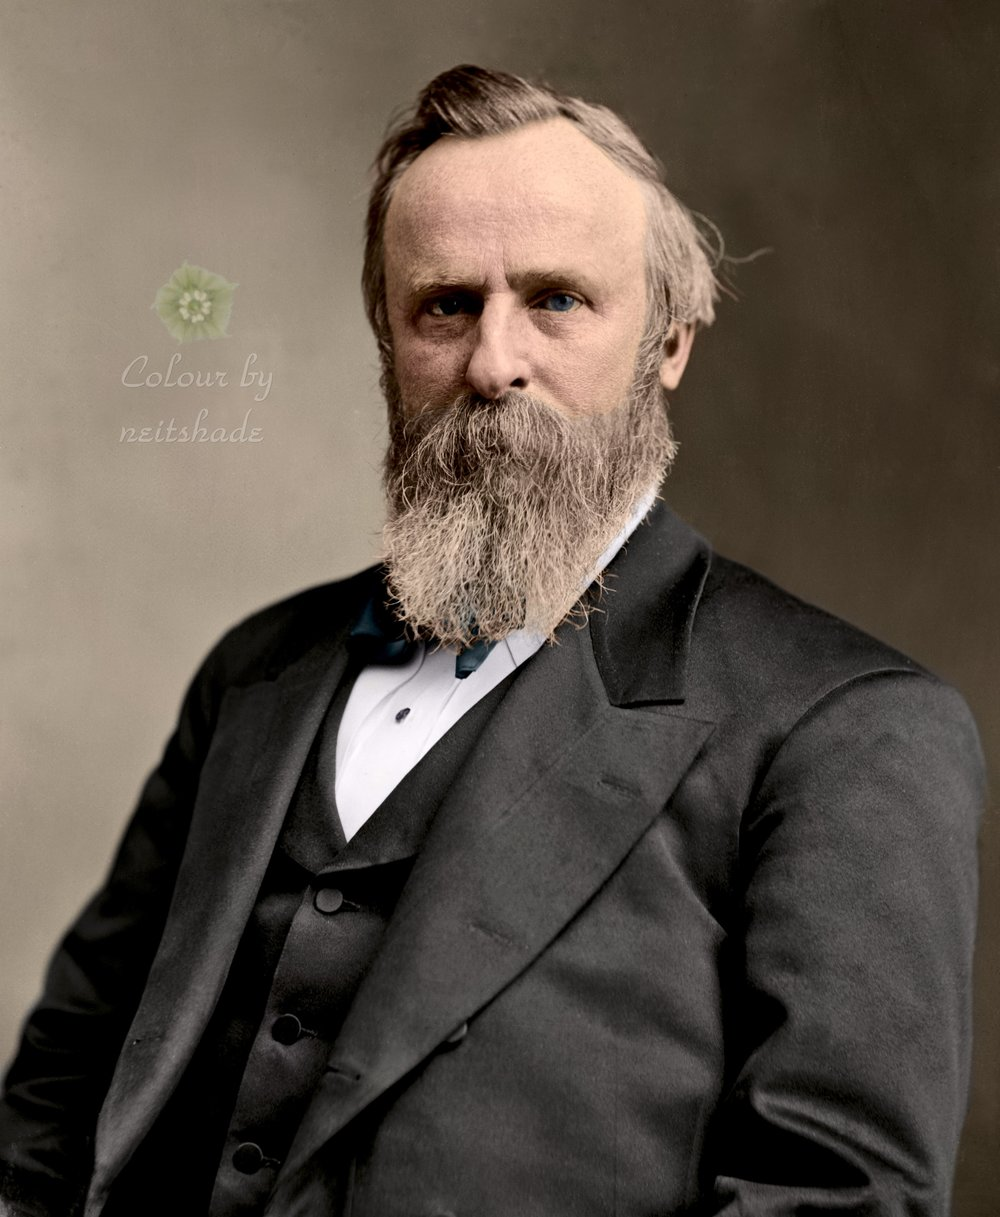 Rutherford B. Hayes, 19th President of the United States, 1877-1881